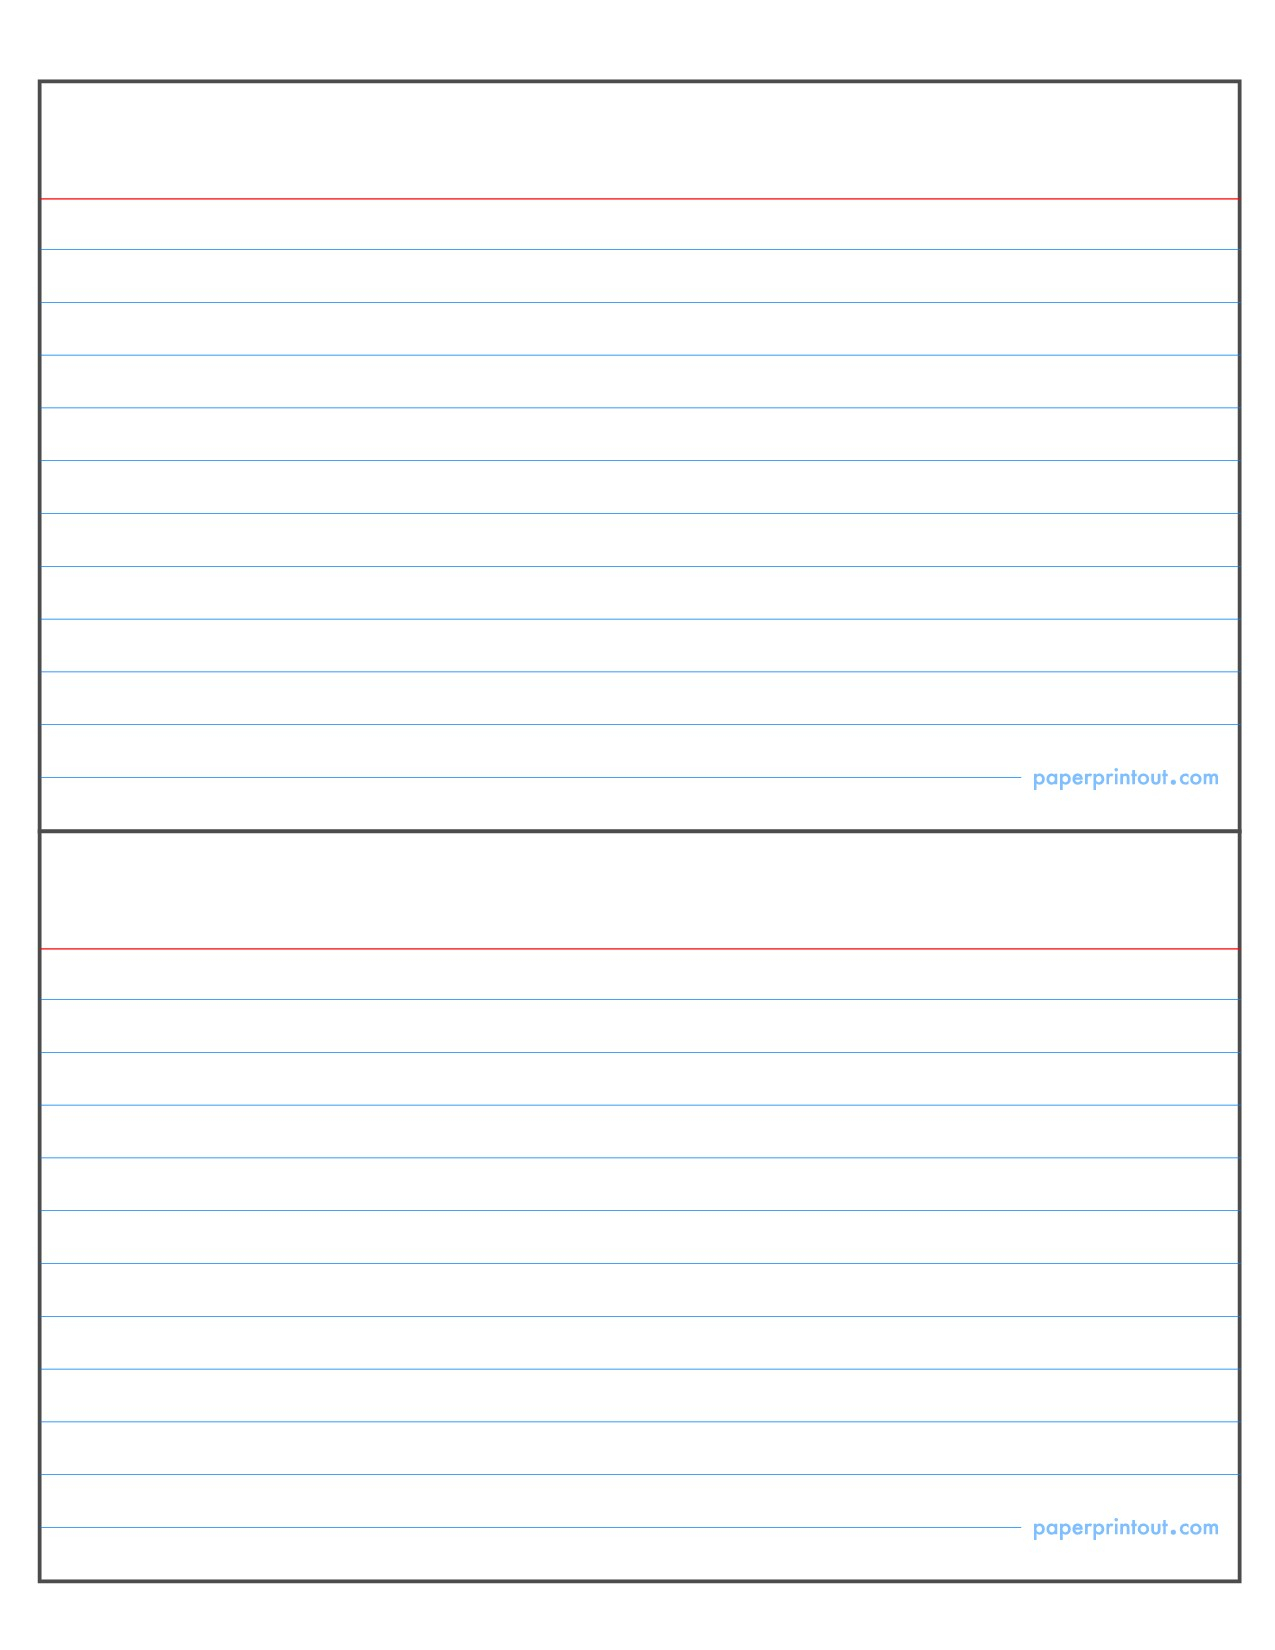 4 X 6 Note Card Template | Brainmaxx With 4X6 Note Card Template